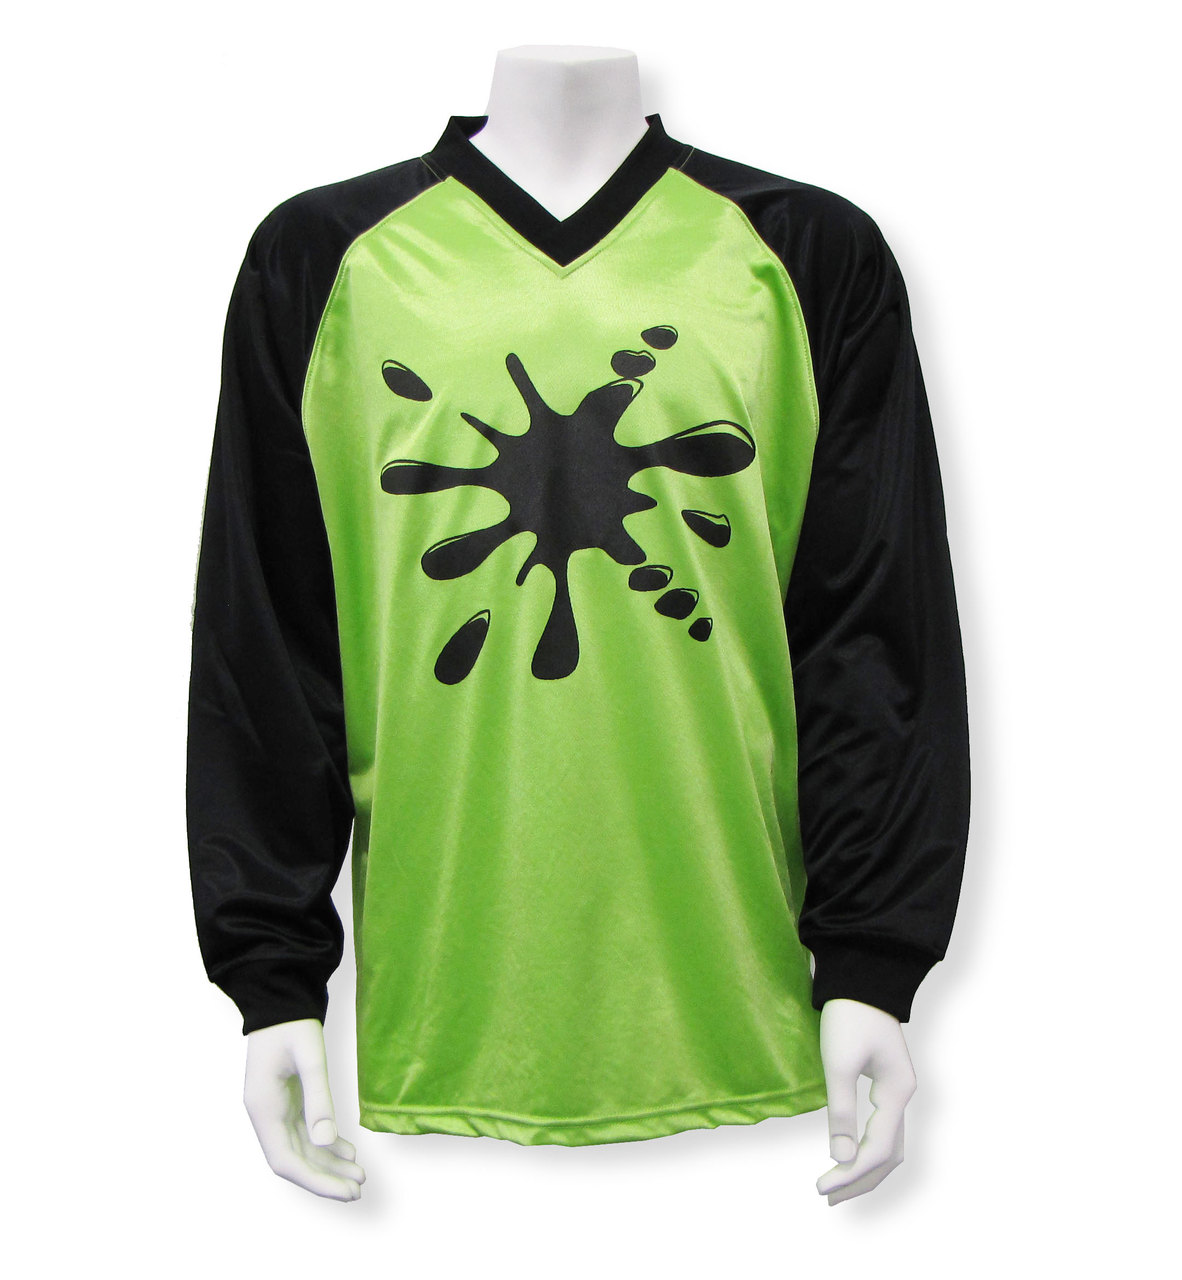 Soccer Goalkeeper Jerseys by Code Four Athletics